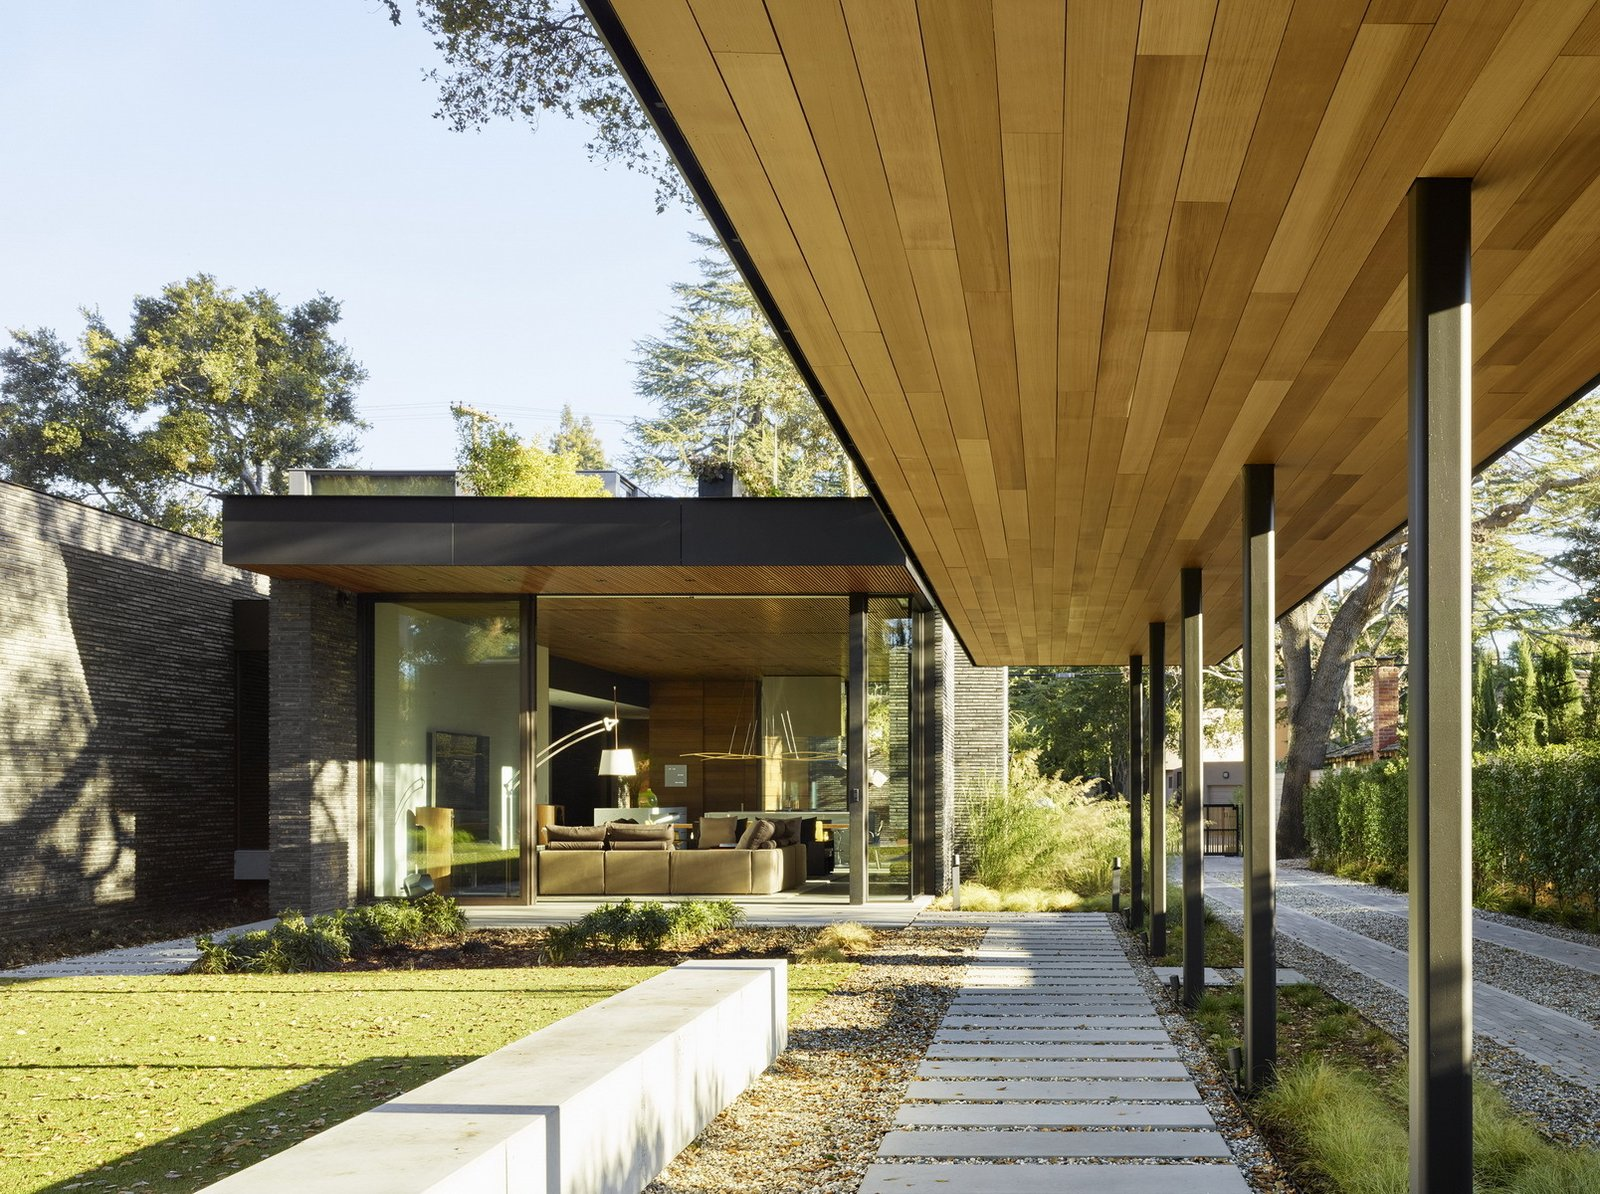 Exterior, Wood Siding Material, Flat RoofLine, House Building Type, and Brick Siding Material  Waverley Residence by Ehrlich Yanai Rhee Chaney Architects